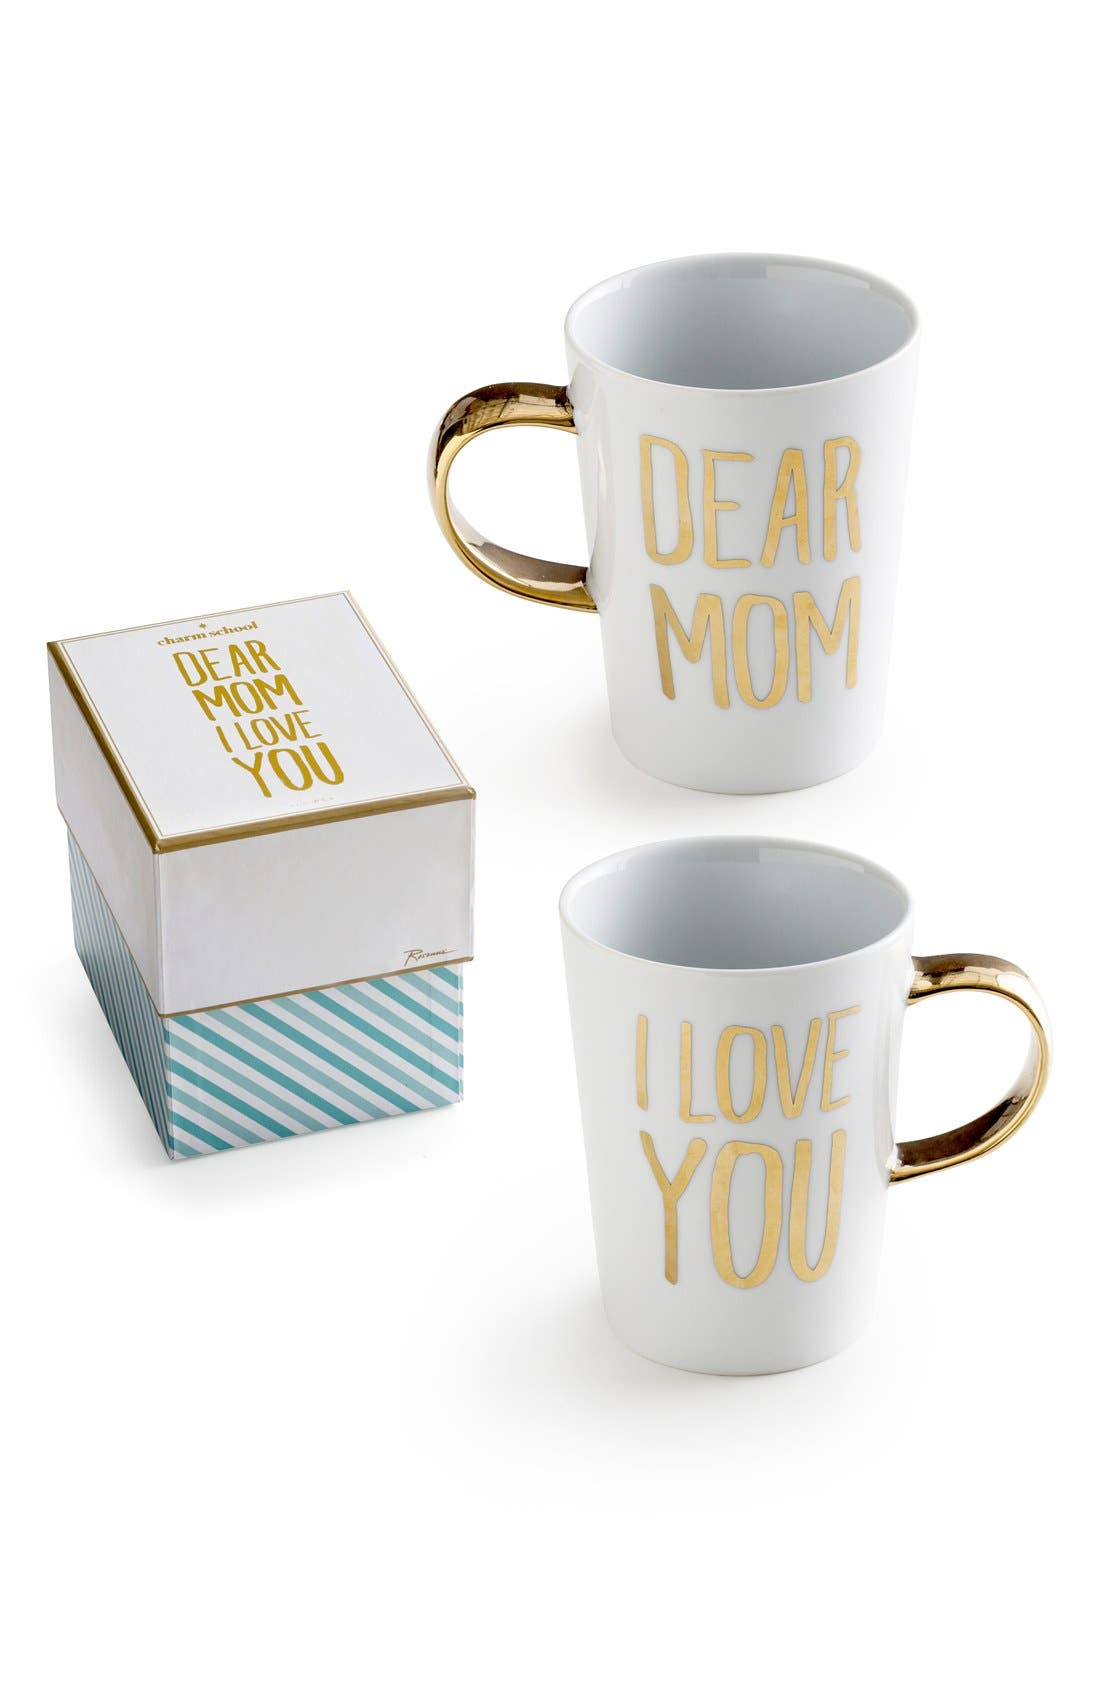 Rosanna 'Dear Mom I Love You' Porcelain Coffee Mug